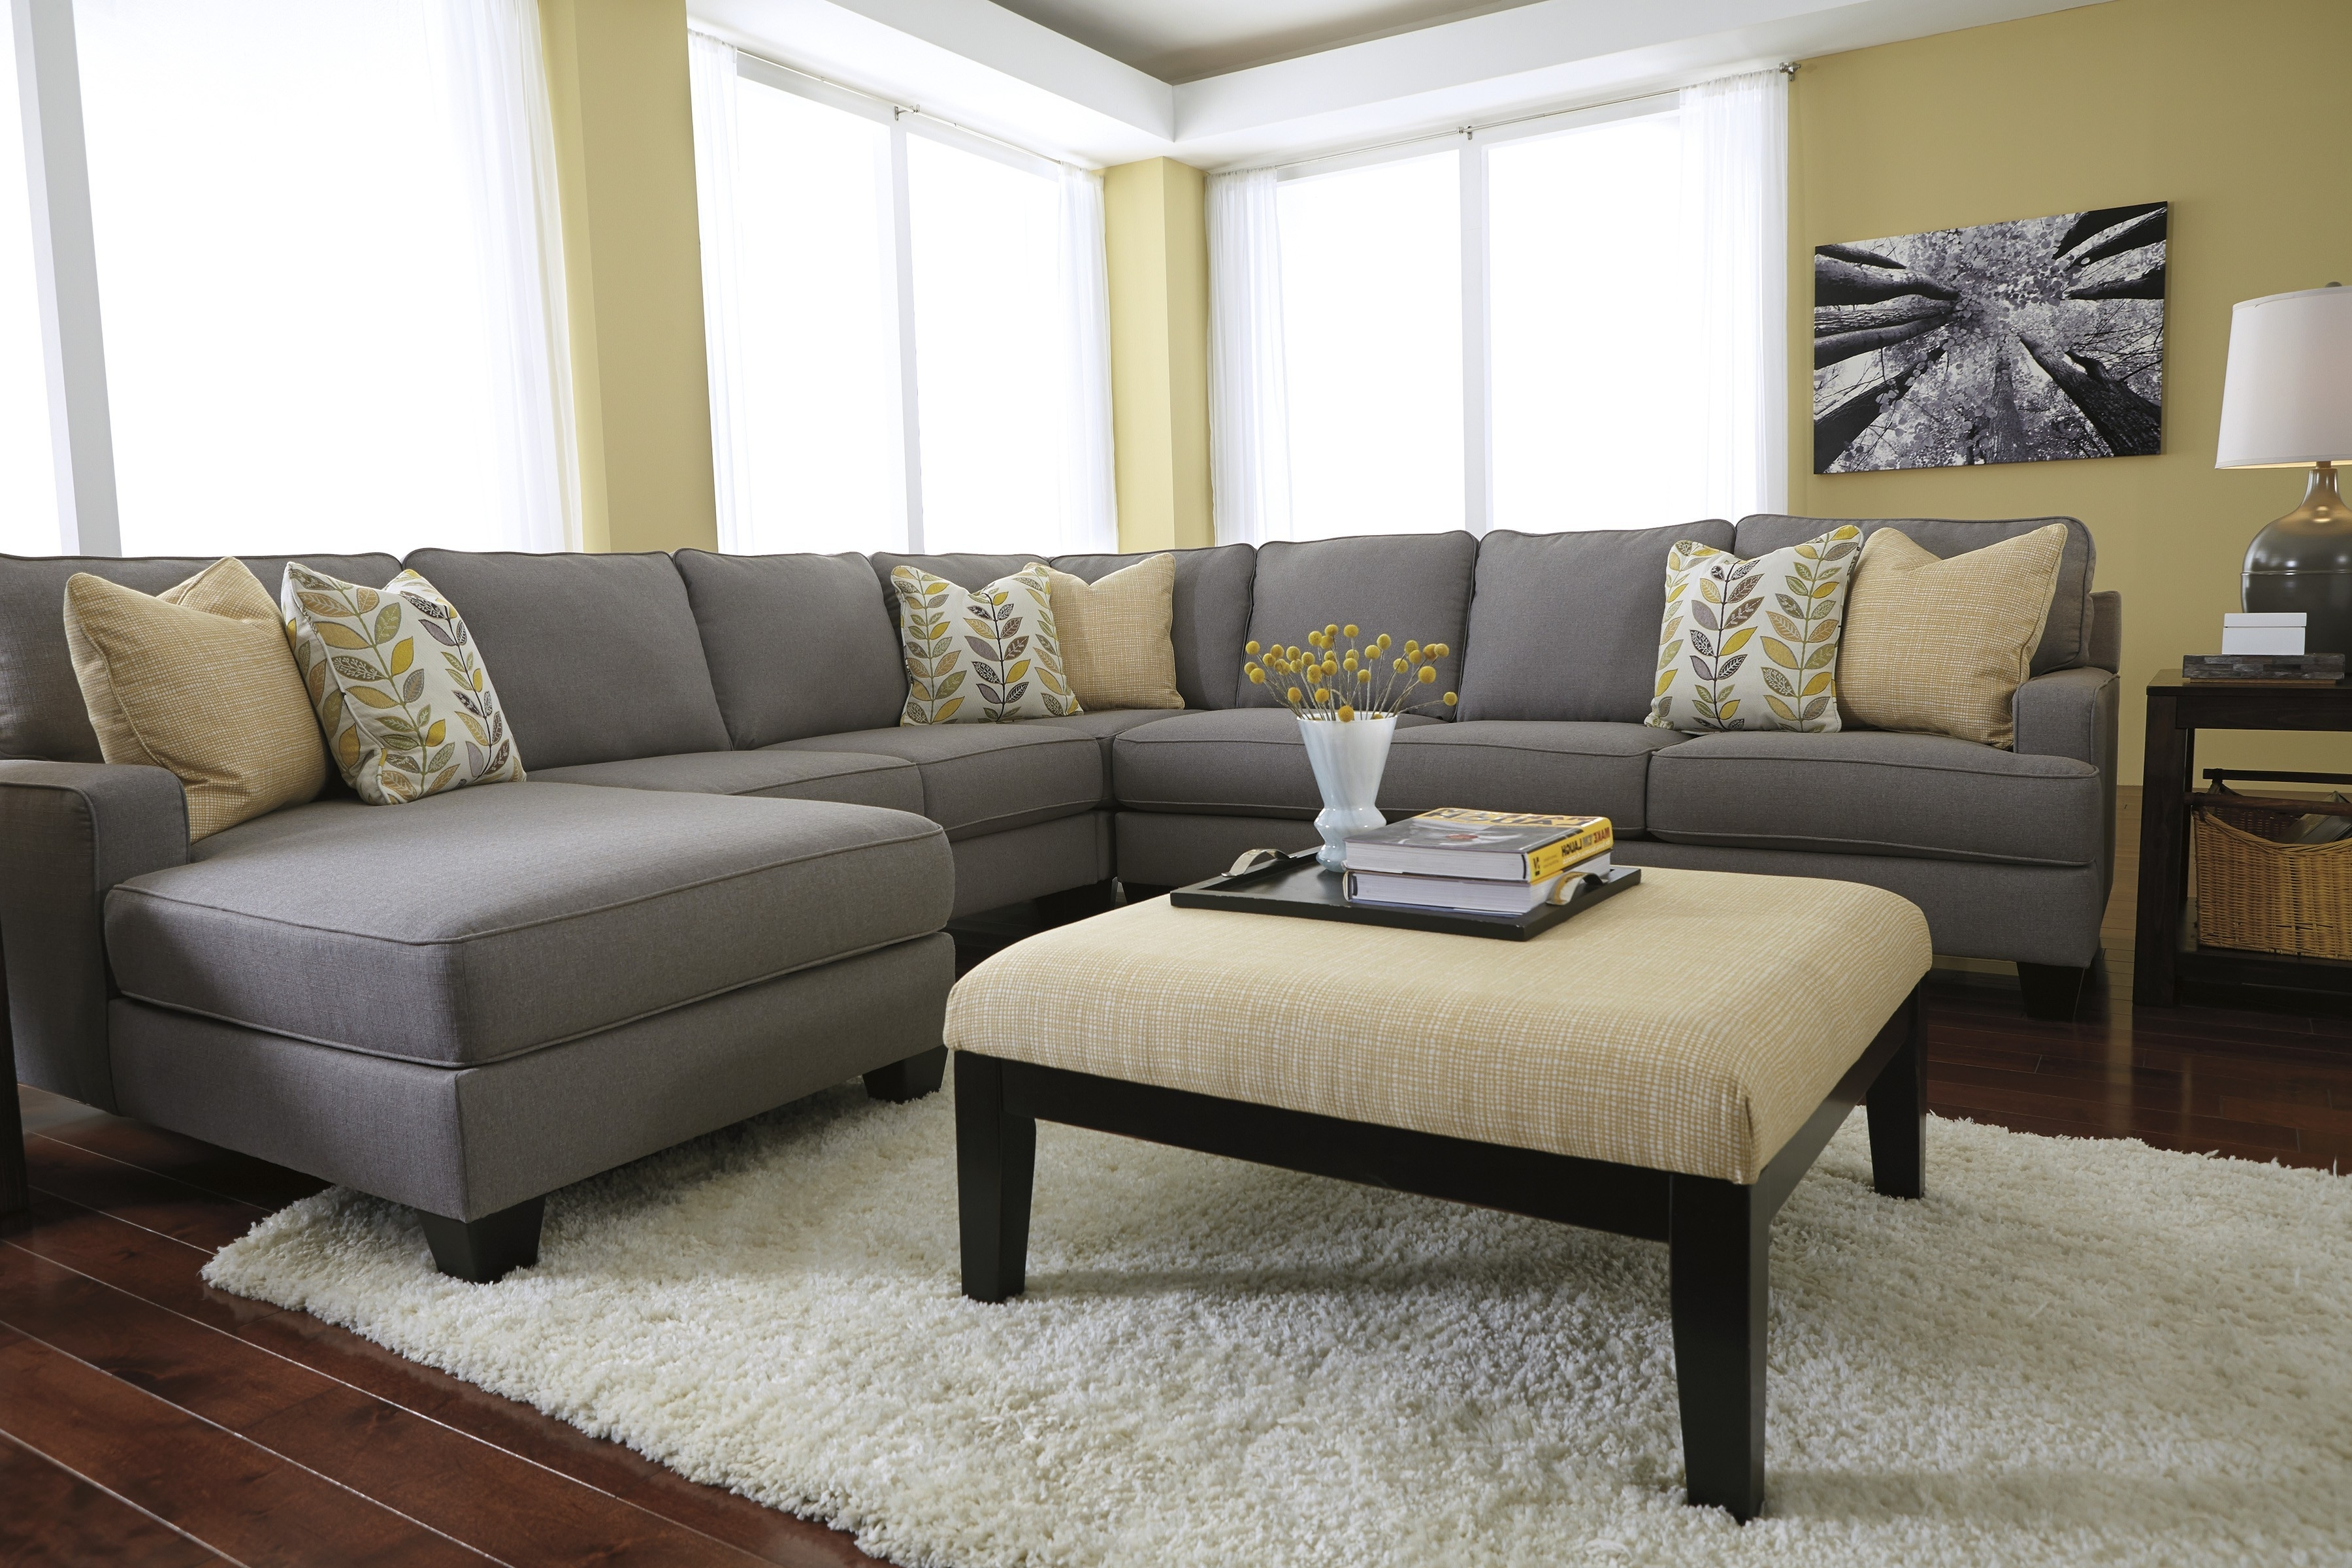 Latest L Shaped Sectional Sleeper Sofas Pertaining To L Shaped Sleeper Sofa Fabrics For Sofa Bed Convertible Sectional (View 12 of 20)